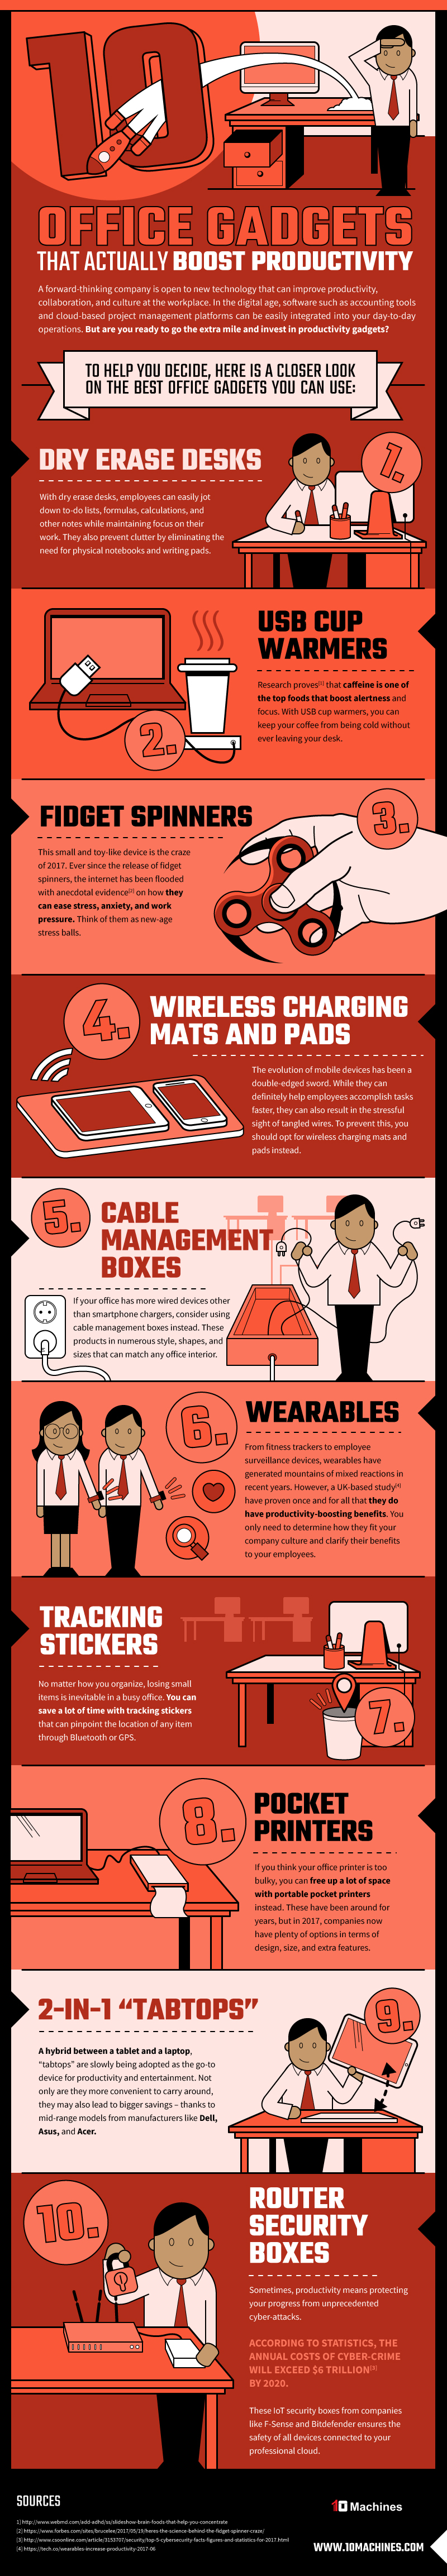 10_Office_Gadgets_infographic